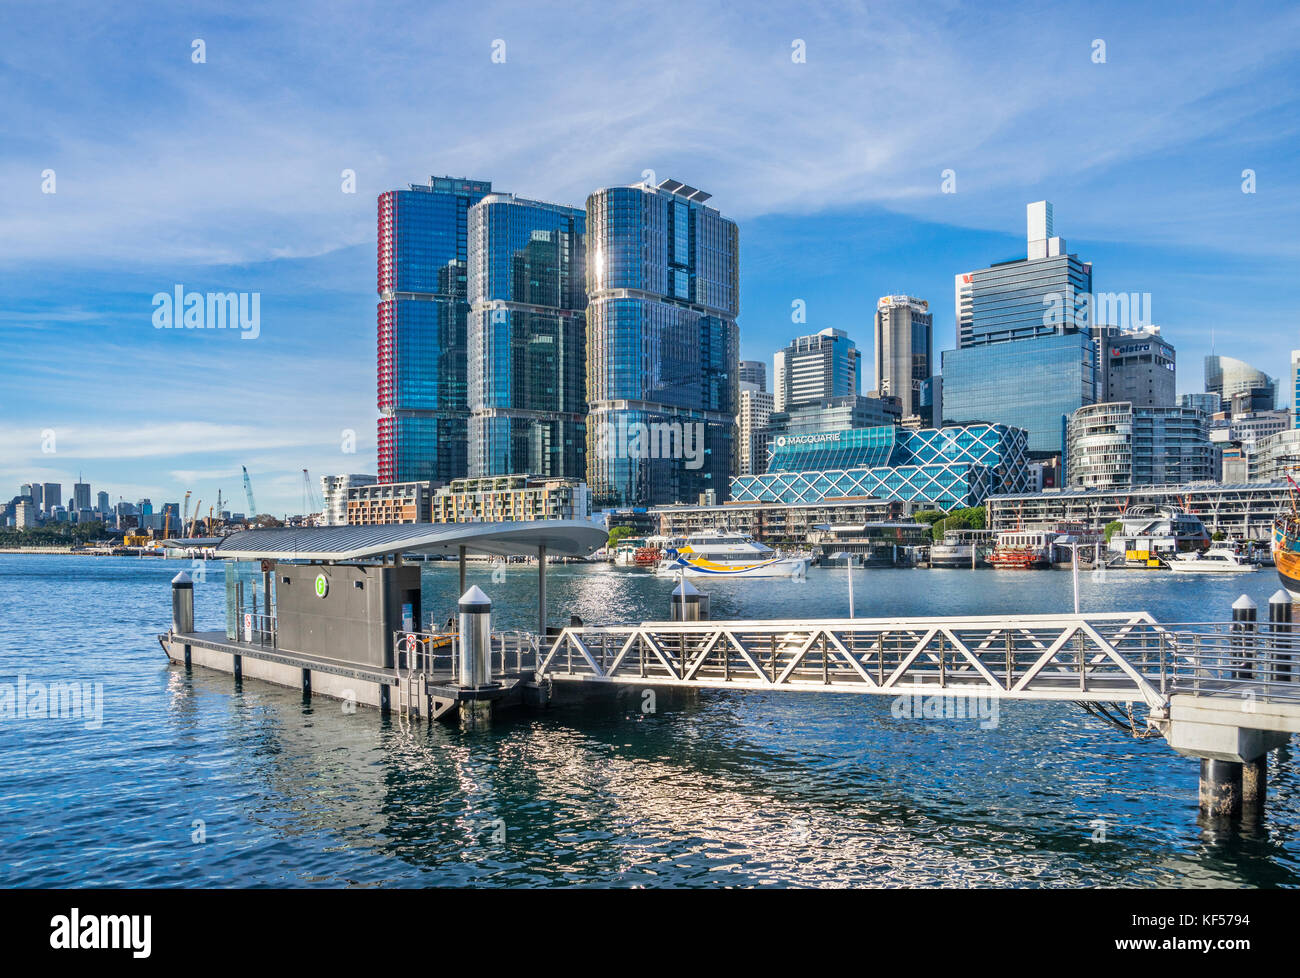 Australien, New South Wales, Sydney, Ausblick auf den Darling Harbour und die barangaroo International Towers von Stockbild